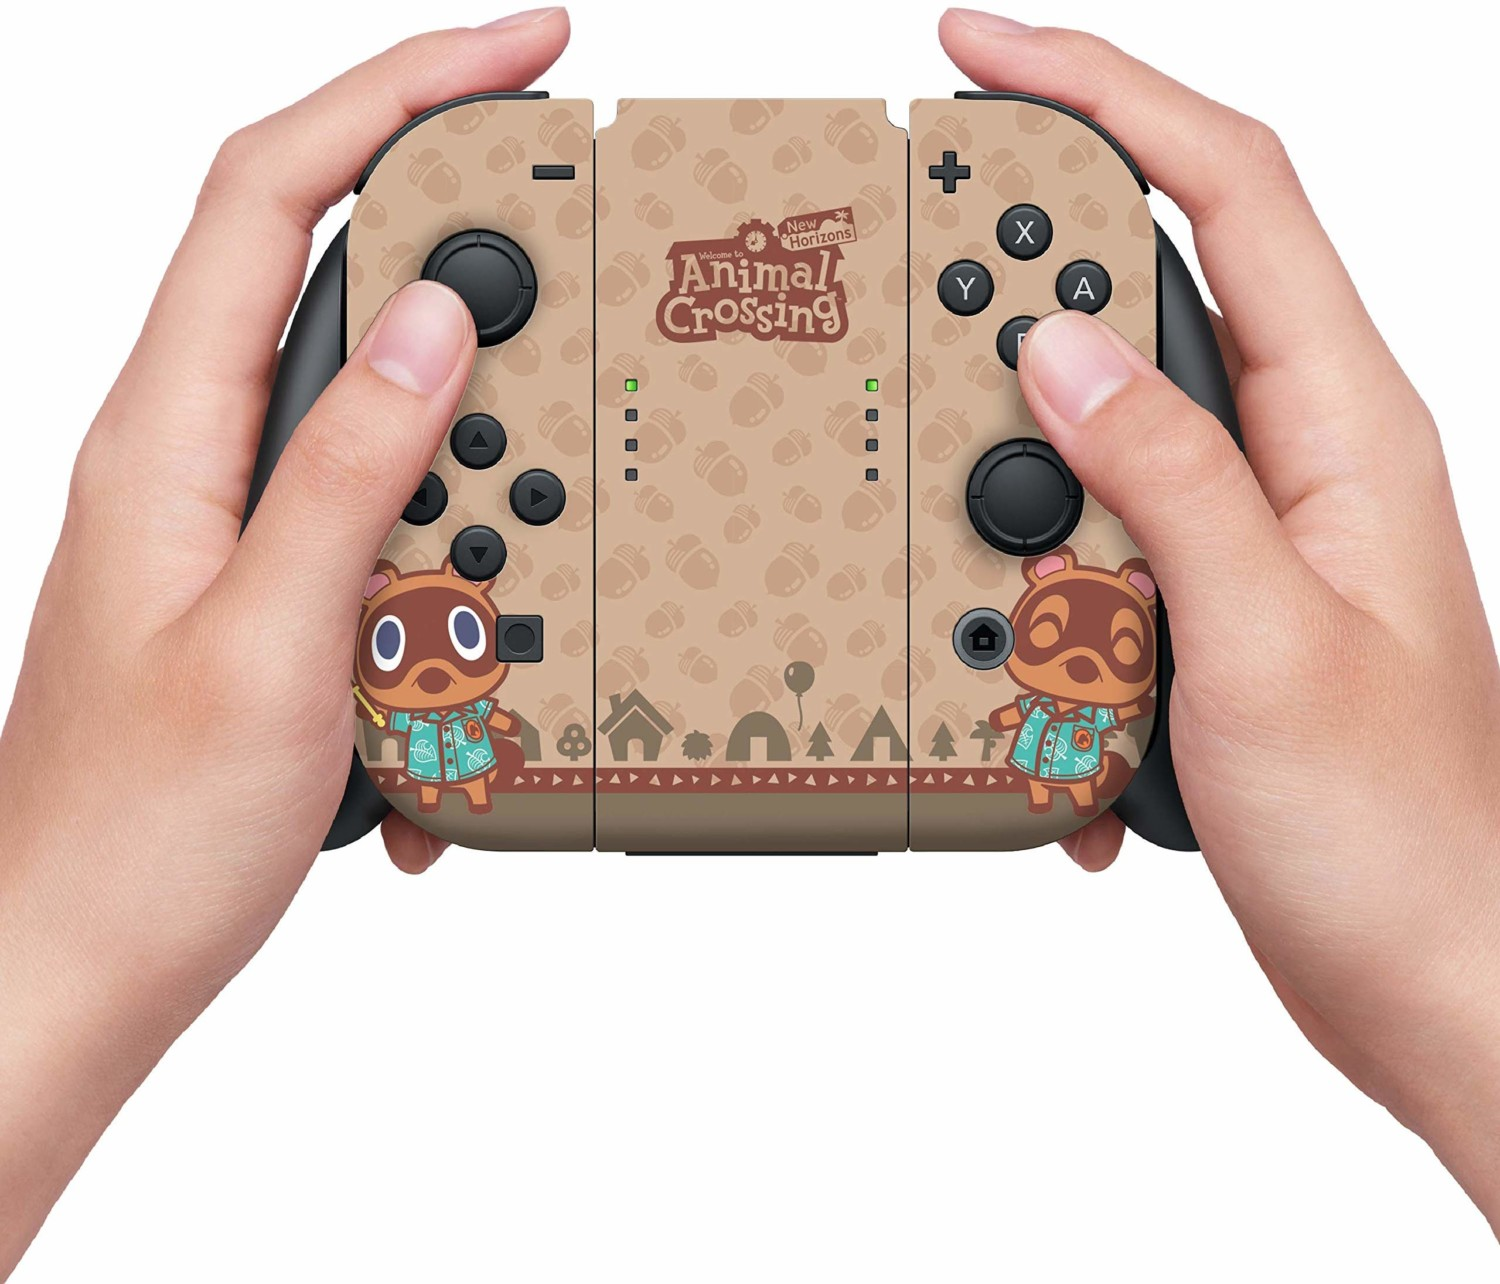 More Animal Crossing New Horizon Skins For Switch And Switch Lite